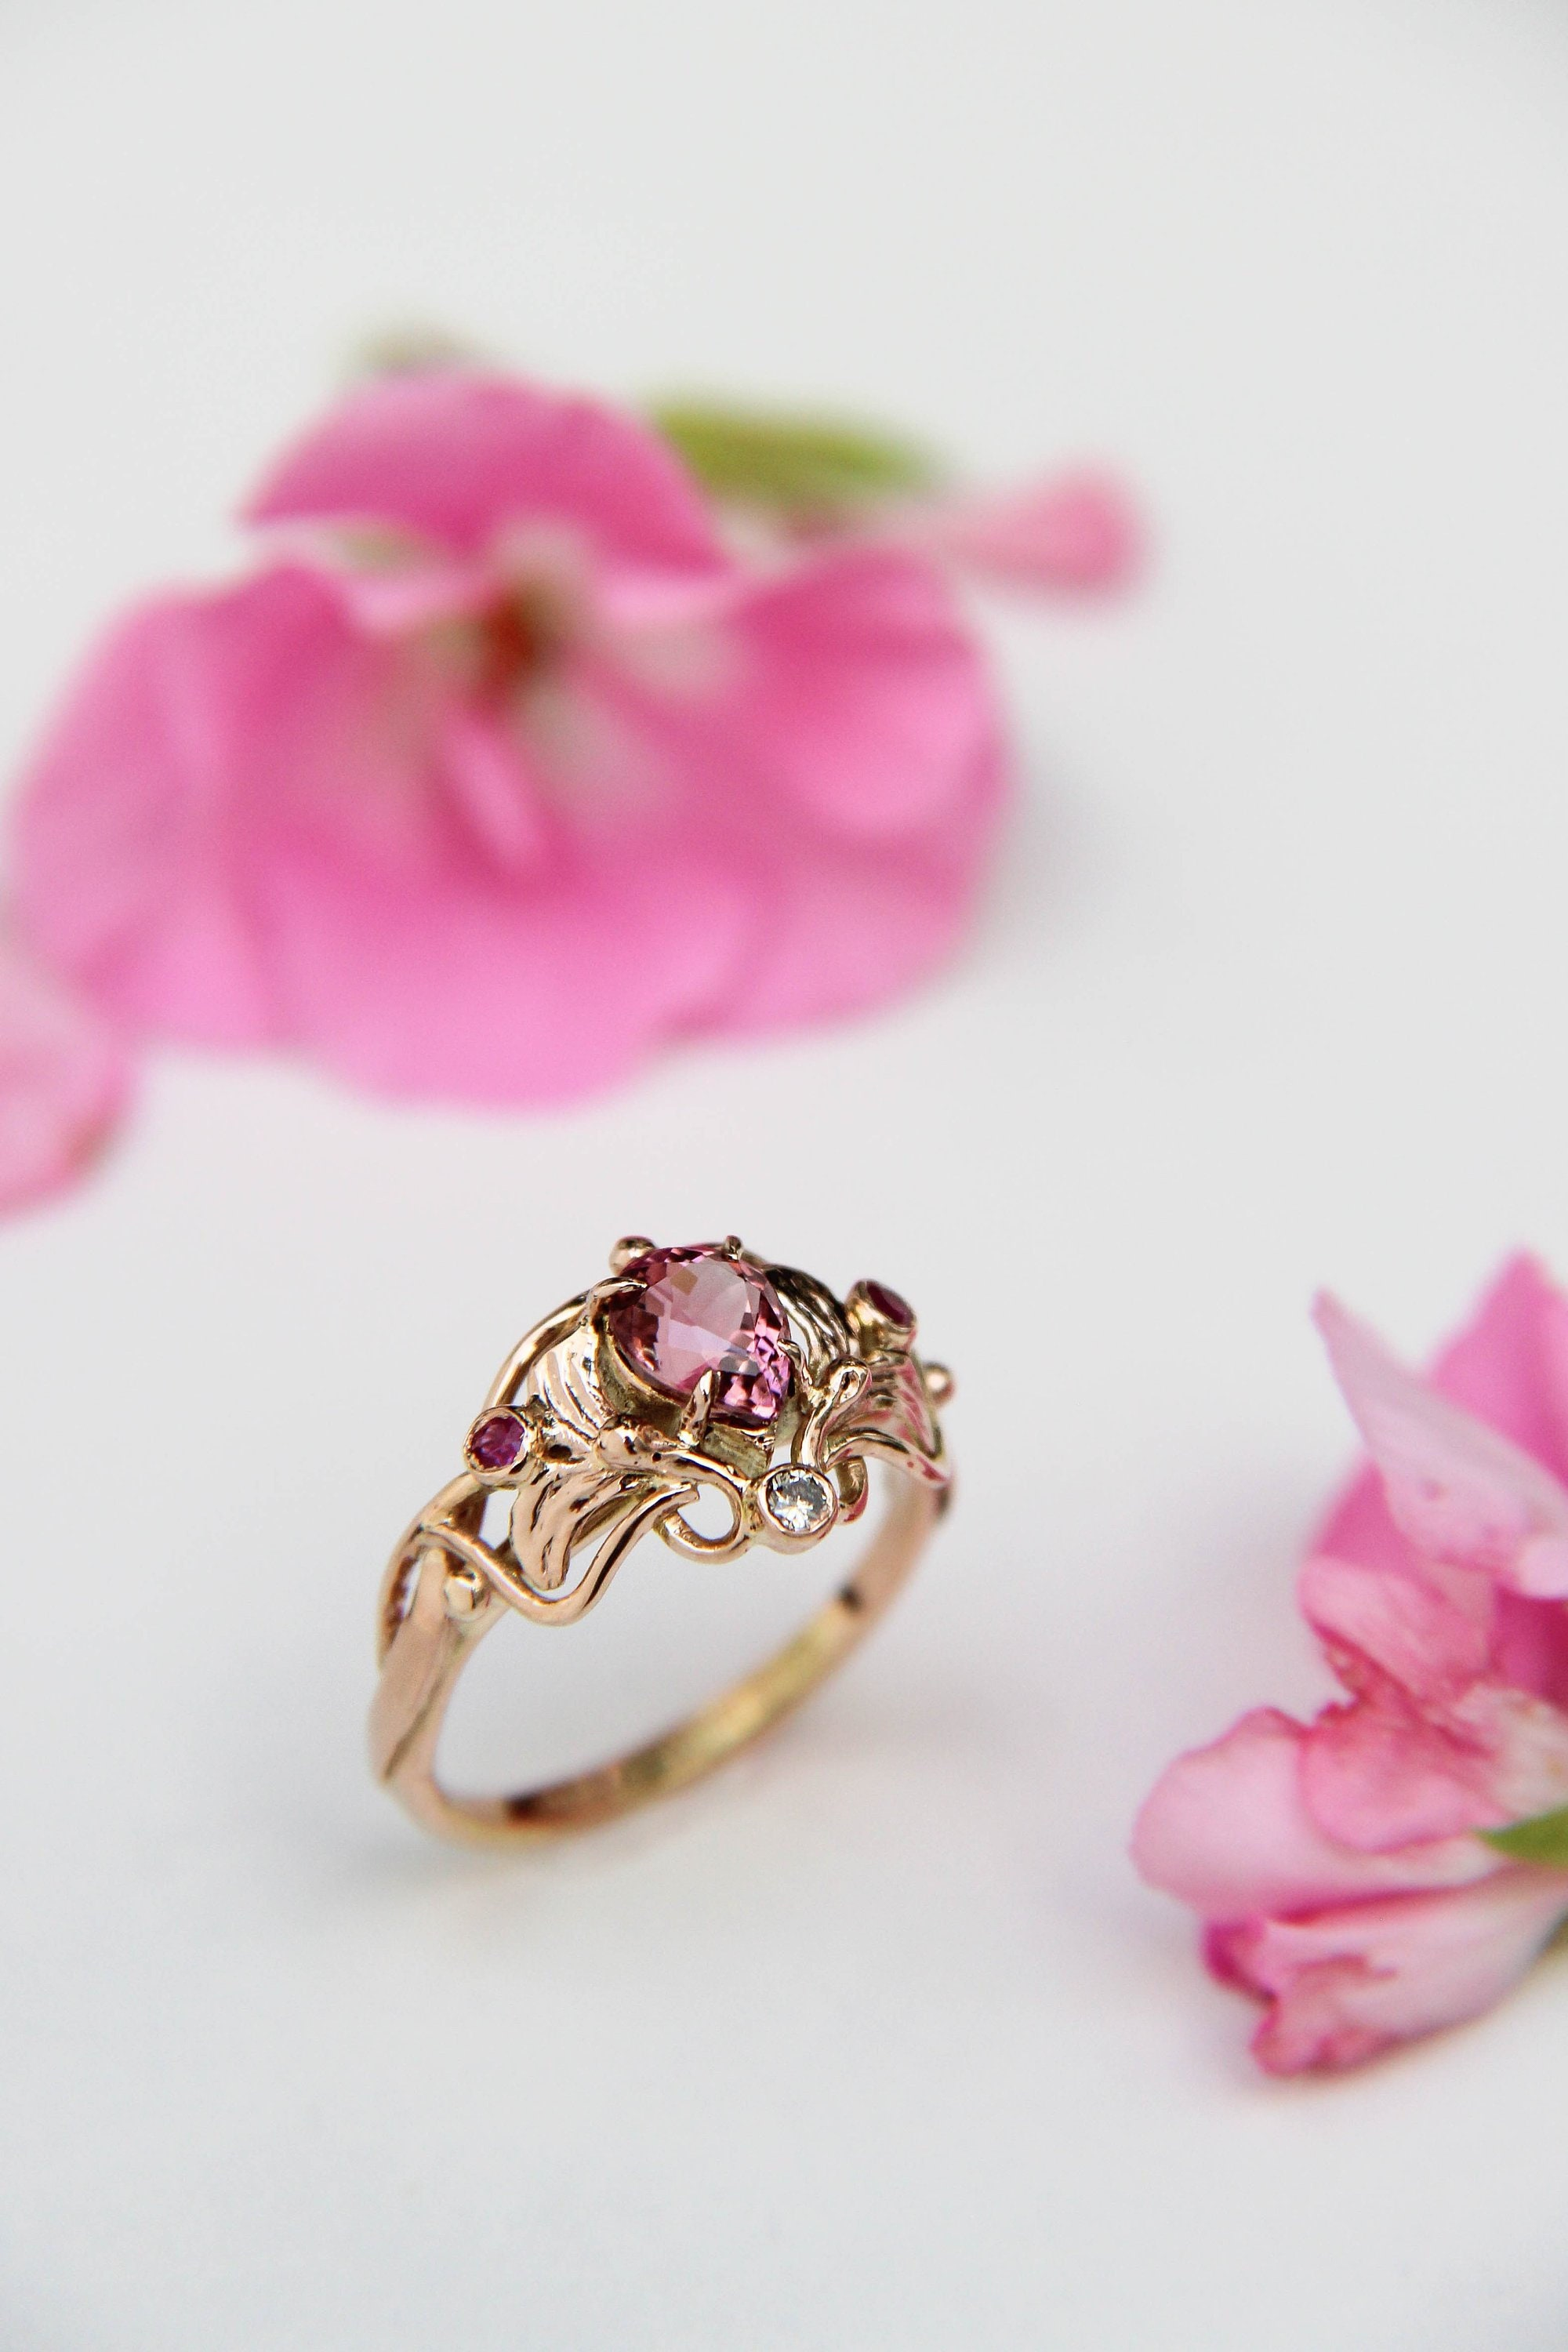 Custom engagement ring in art nouveau style with pink tourmaline ...